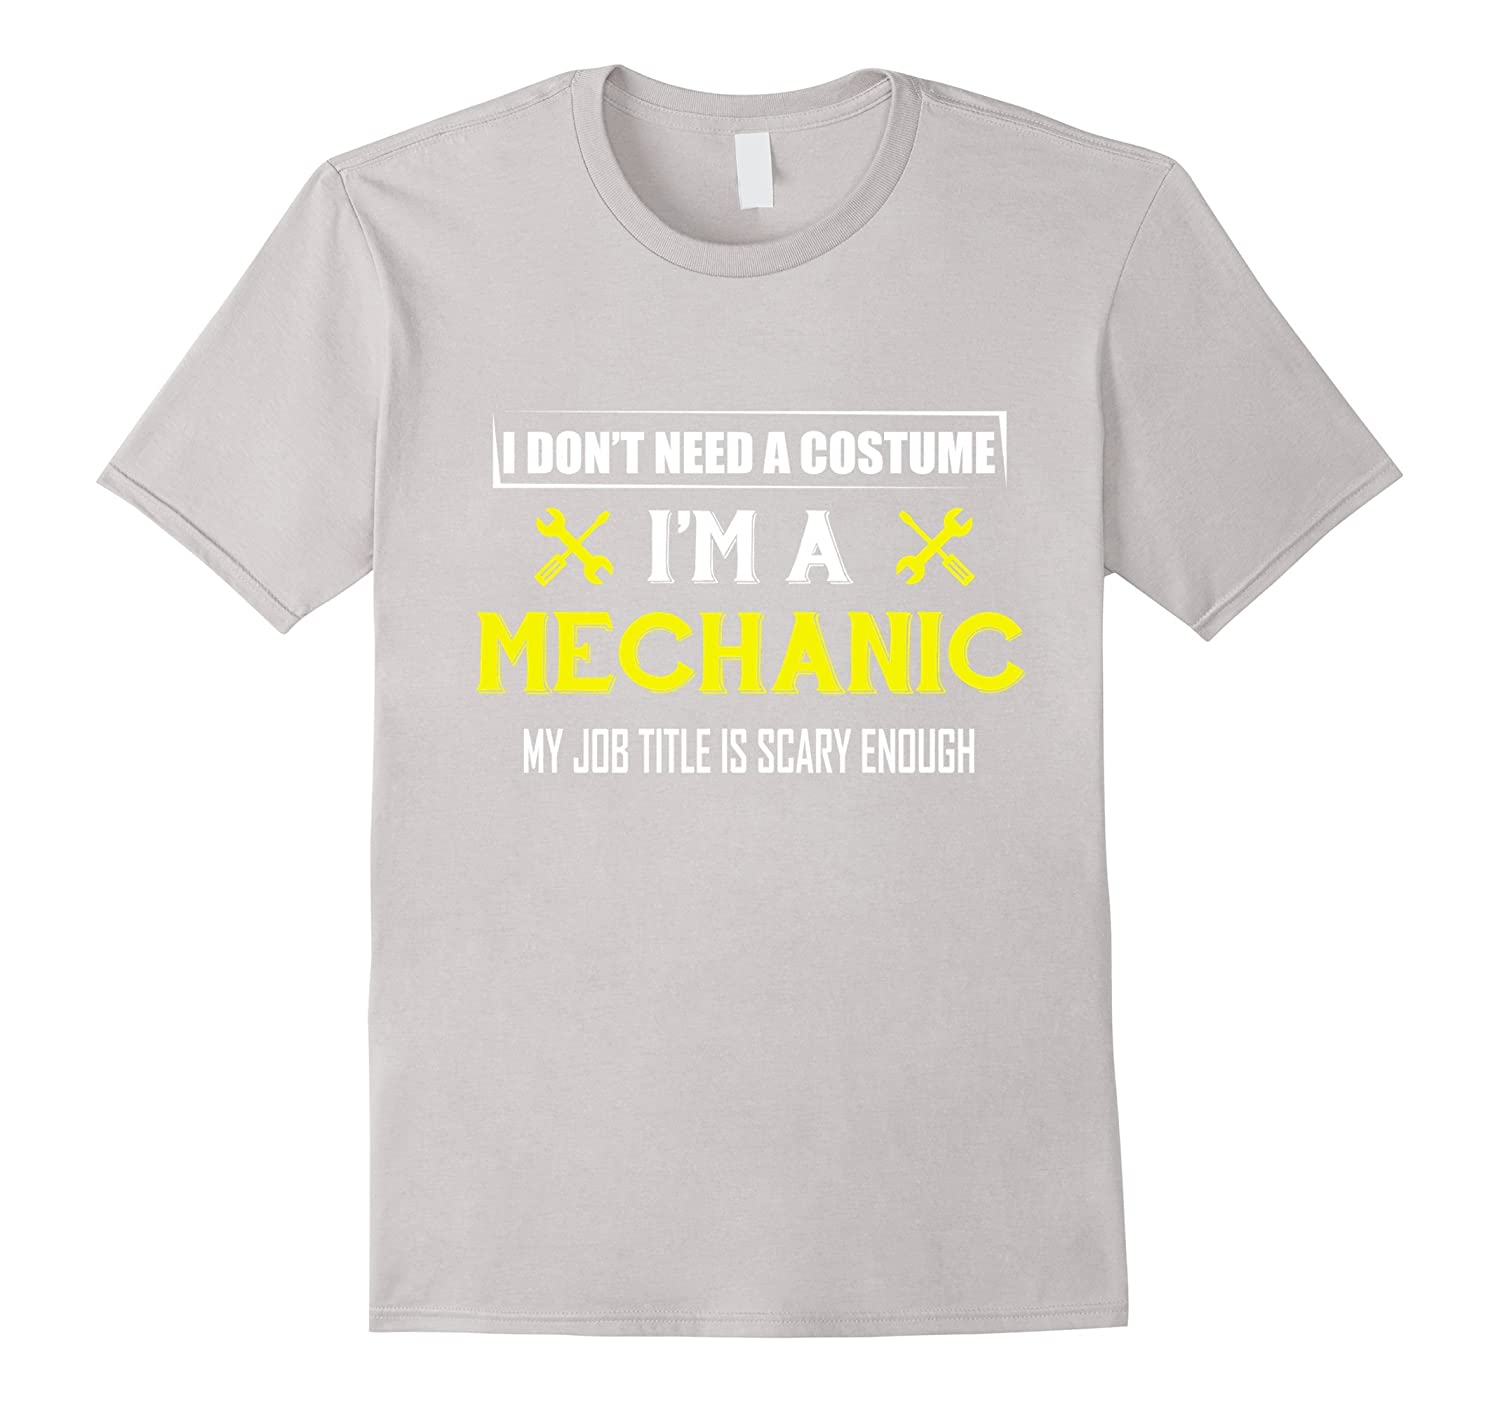 Mechanic Tshirts For Men. Cool Halloween Costume For Husband-FL